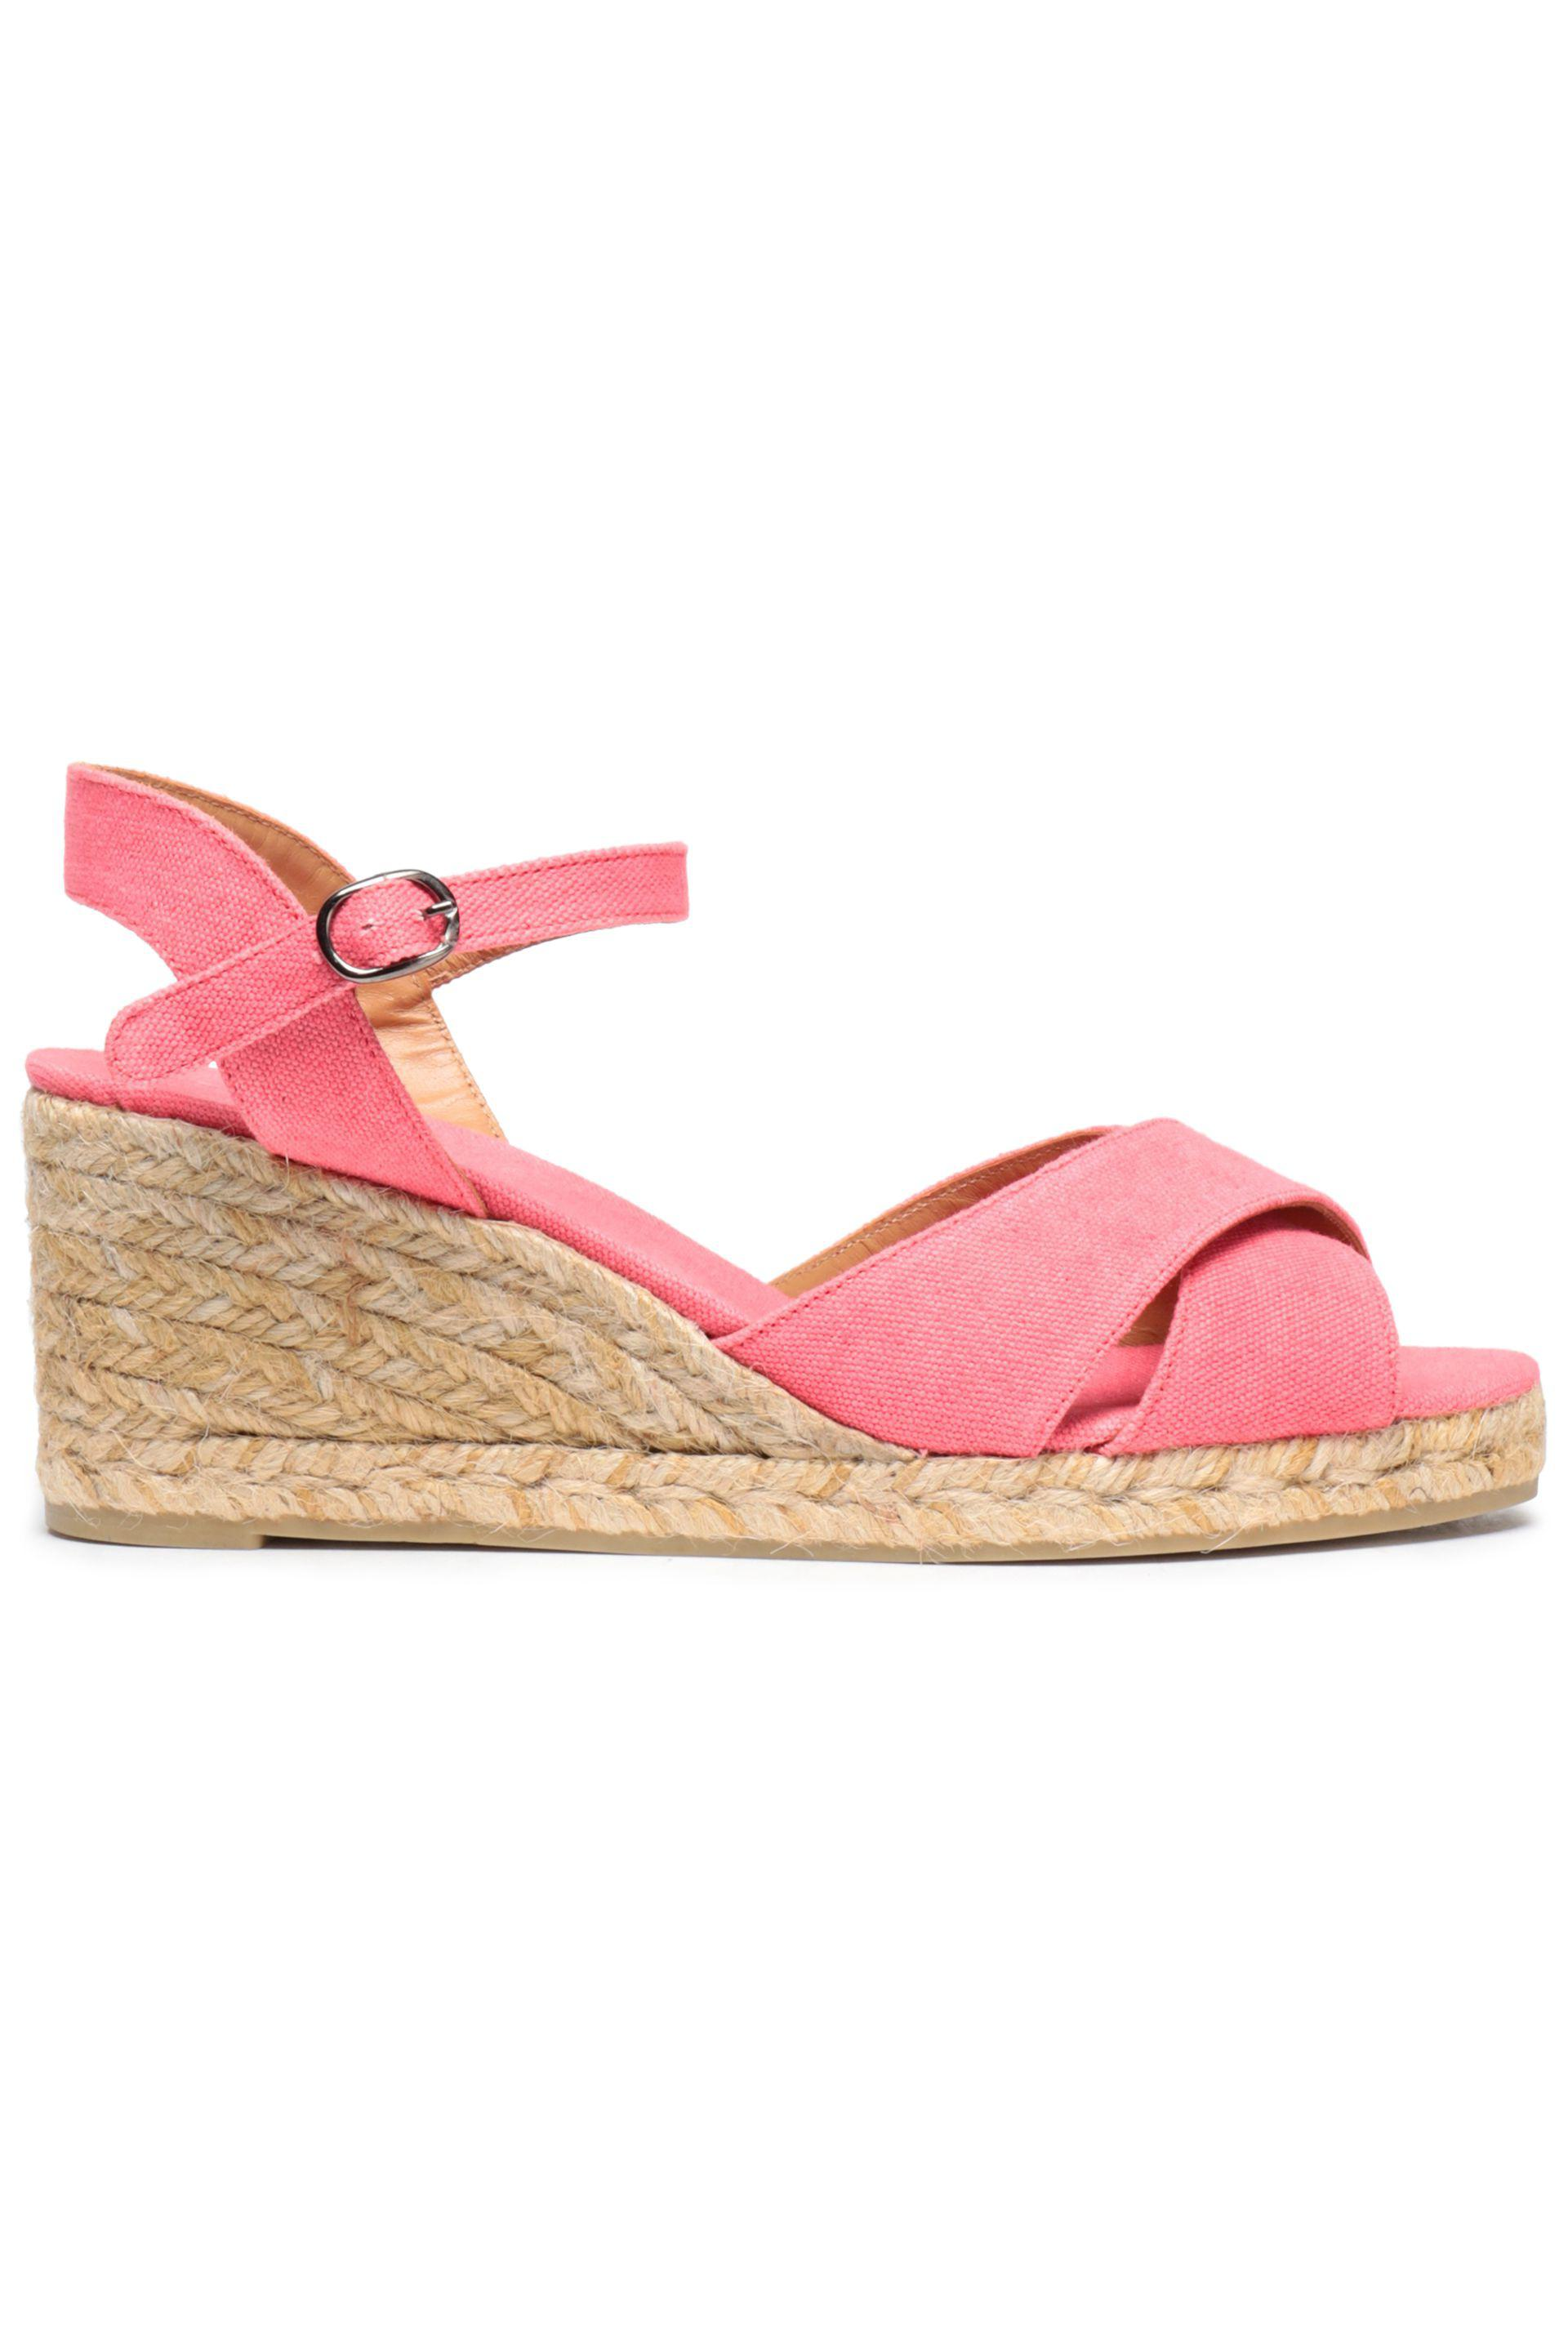 b0c0800c576 Castaner Blaudell Canvas Espadrille Wedge Sandals in Pink - Lyst